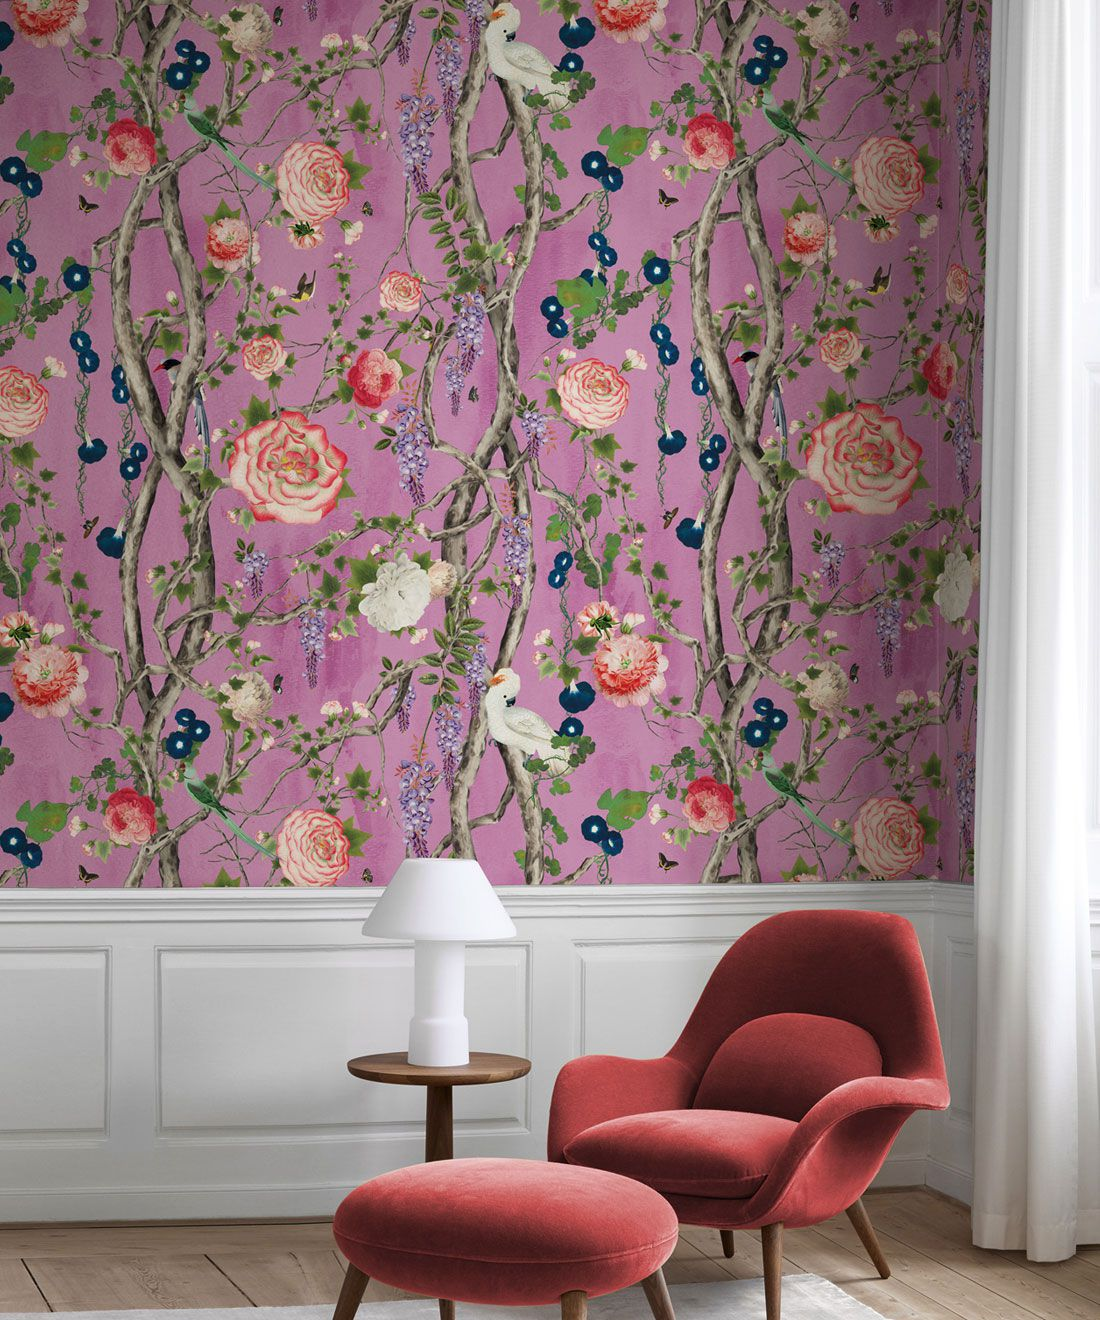 Empress Wallpaper • Romantic Wallpaper • Floral Wallpaper • Chinoiserie Wallpaper • Plum Purple colour wallpaper insitu